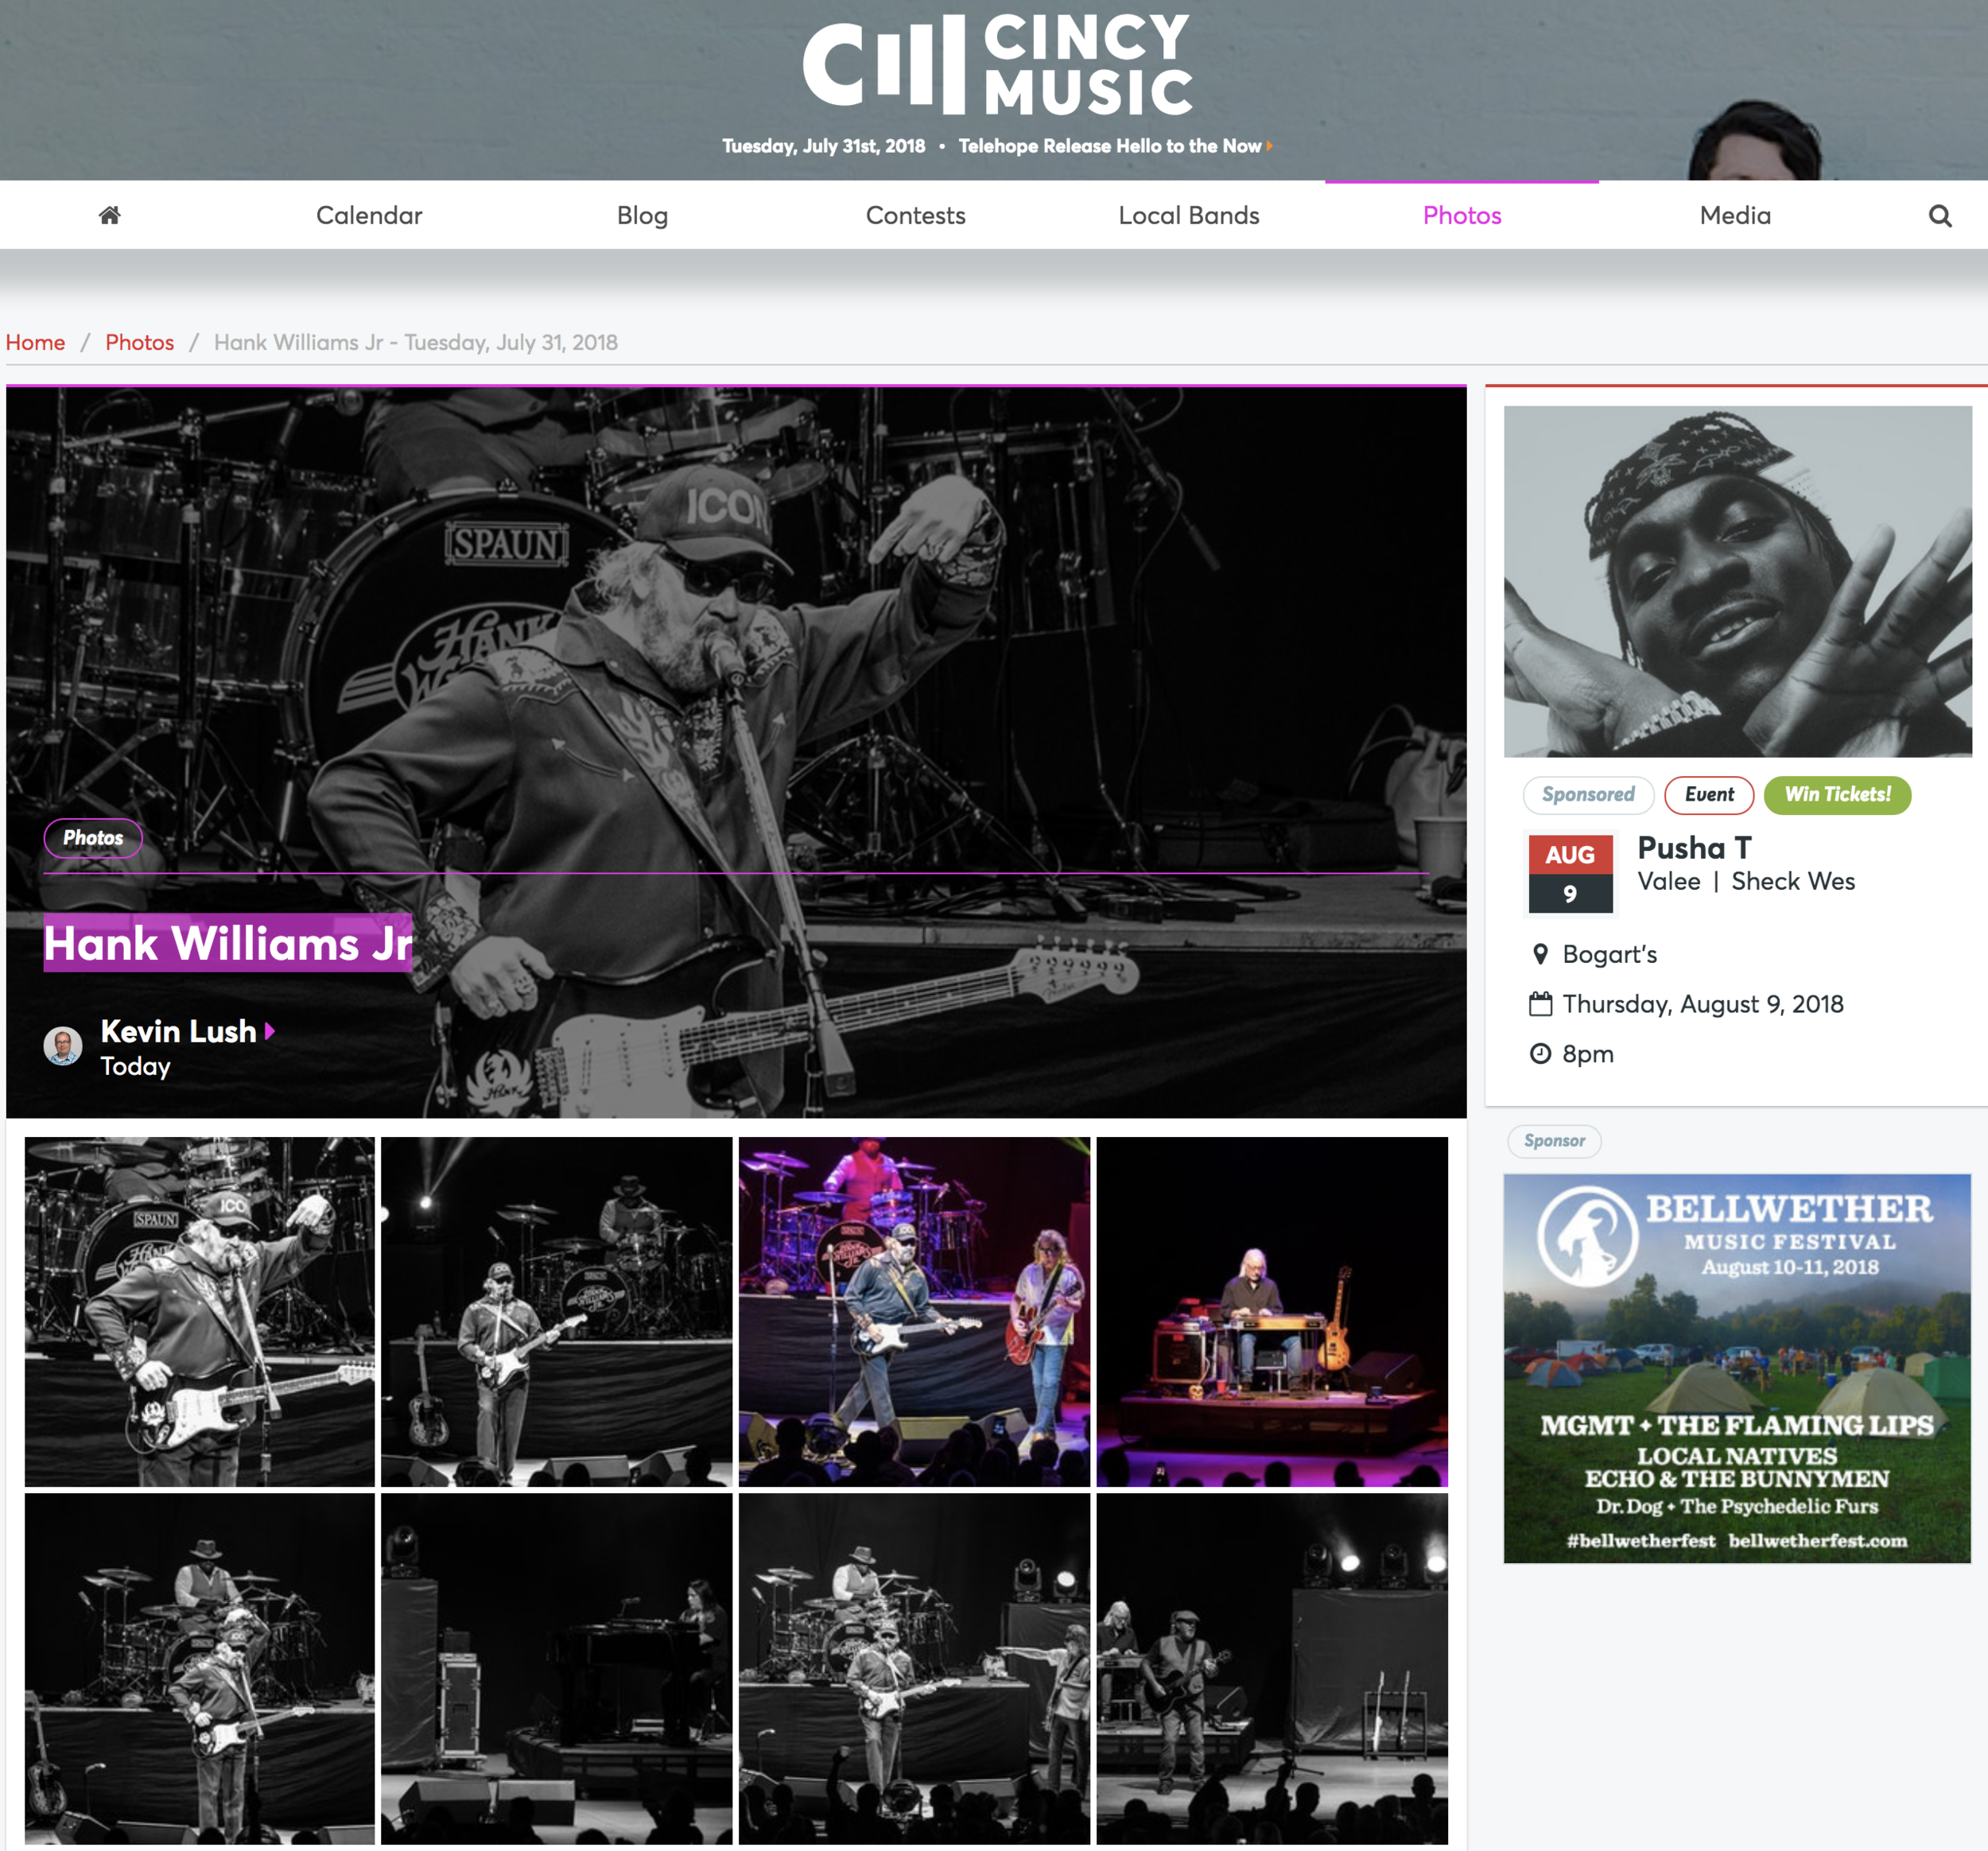 Photos Of Hank Williams Jr. And Tucker Beathard Concert Published On CincyMusic.com